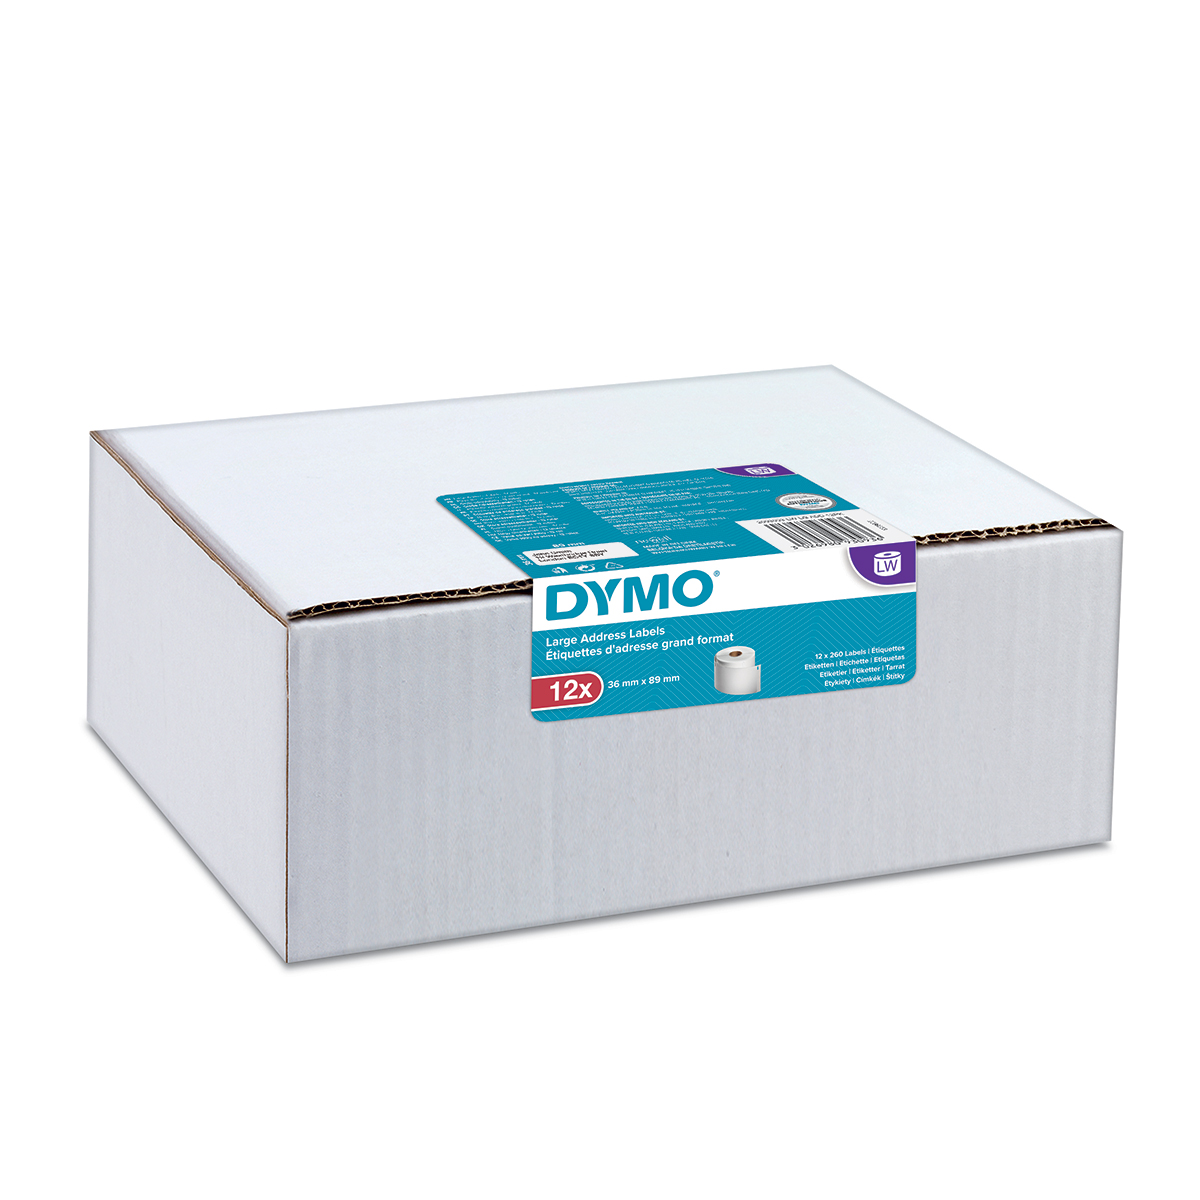 Dymo 2093093 LW Large Address Labels 36 x 89mm 12 pack